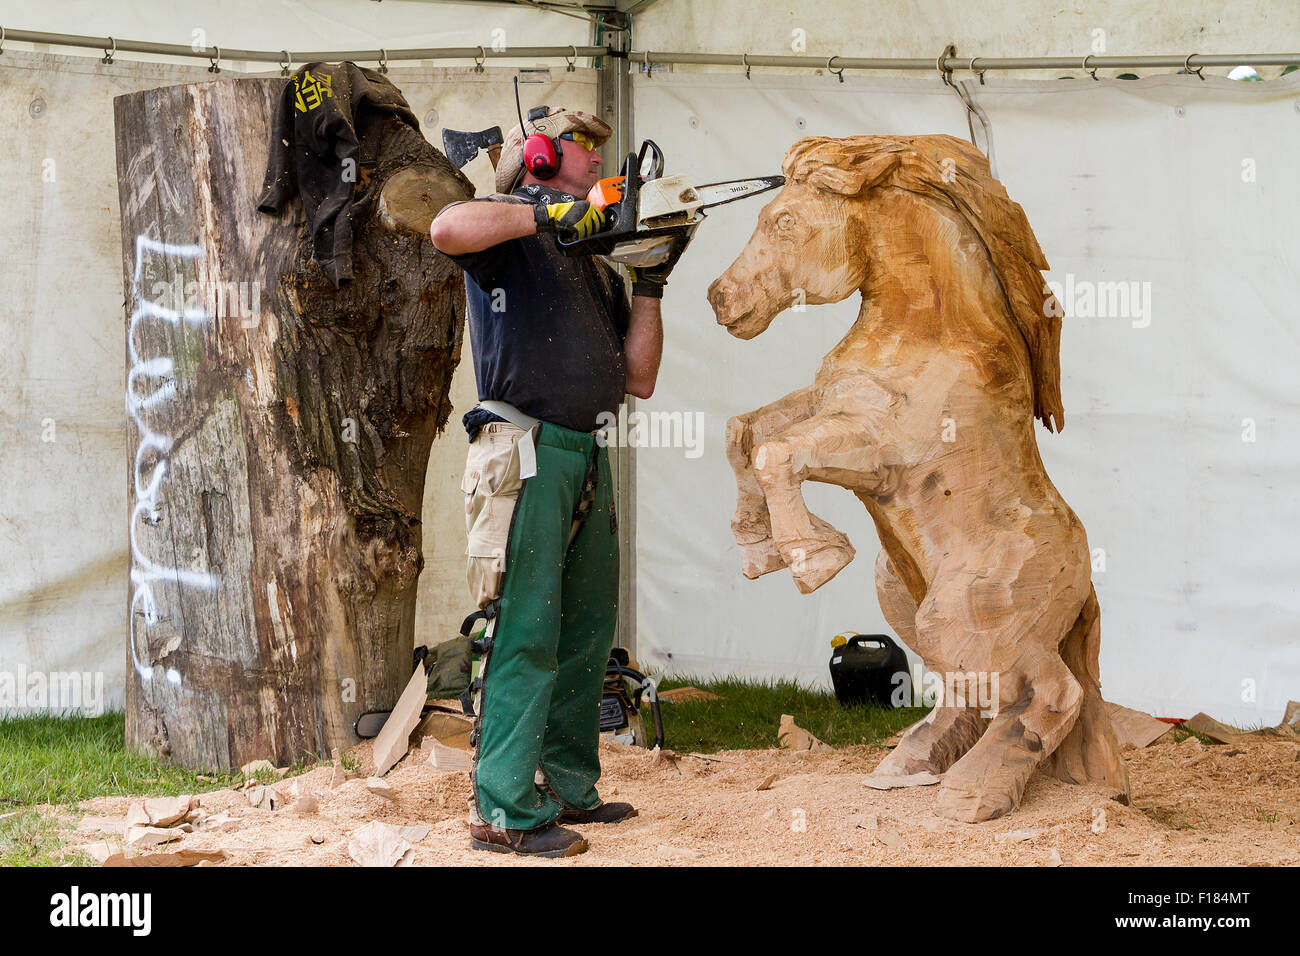 The th english open chainsaw carving competition held at